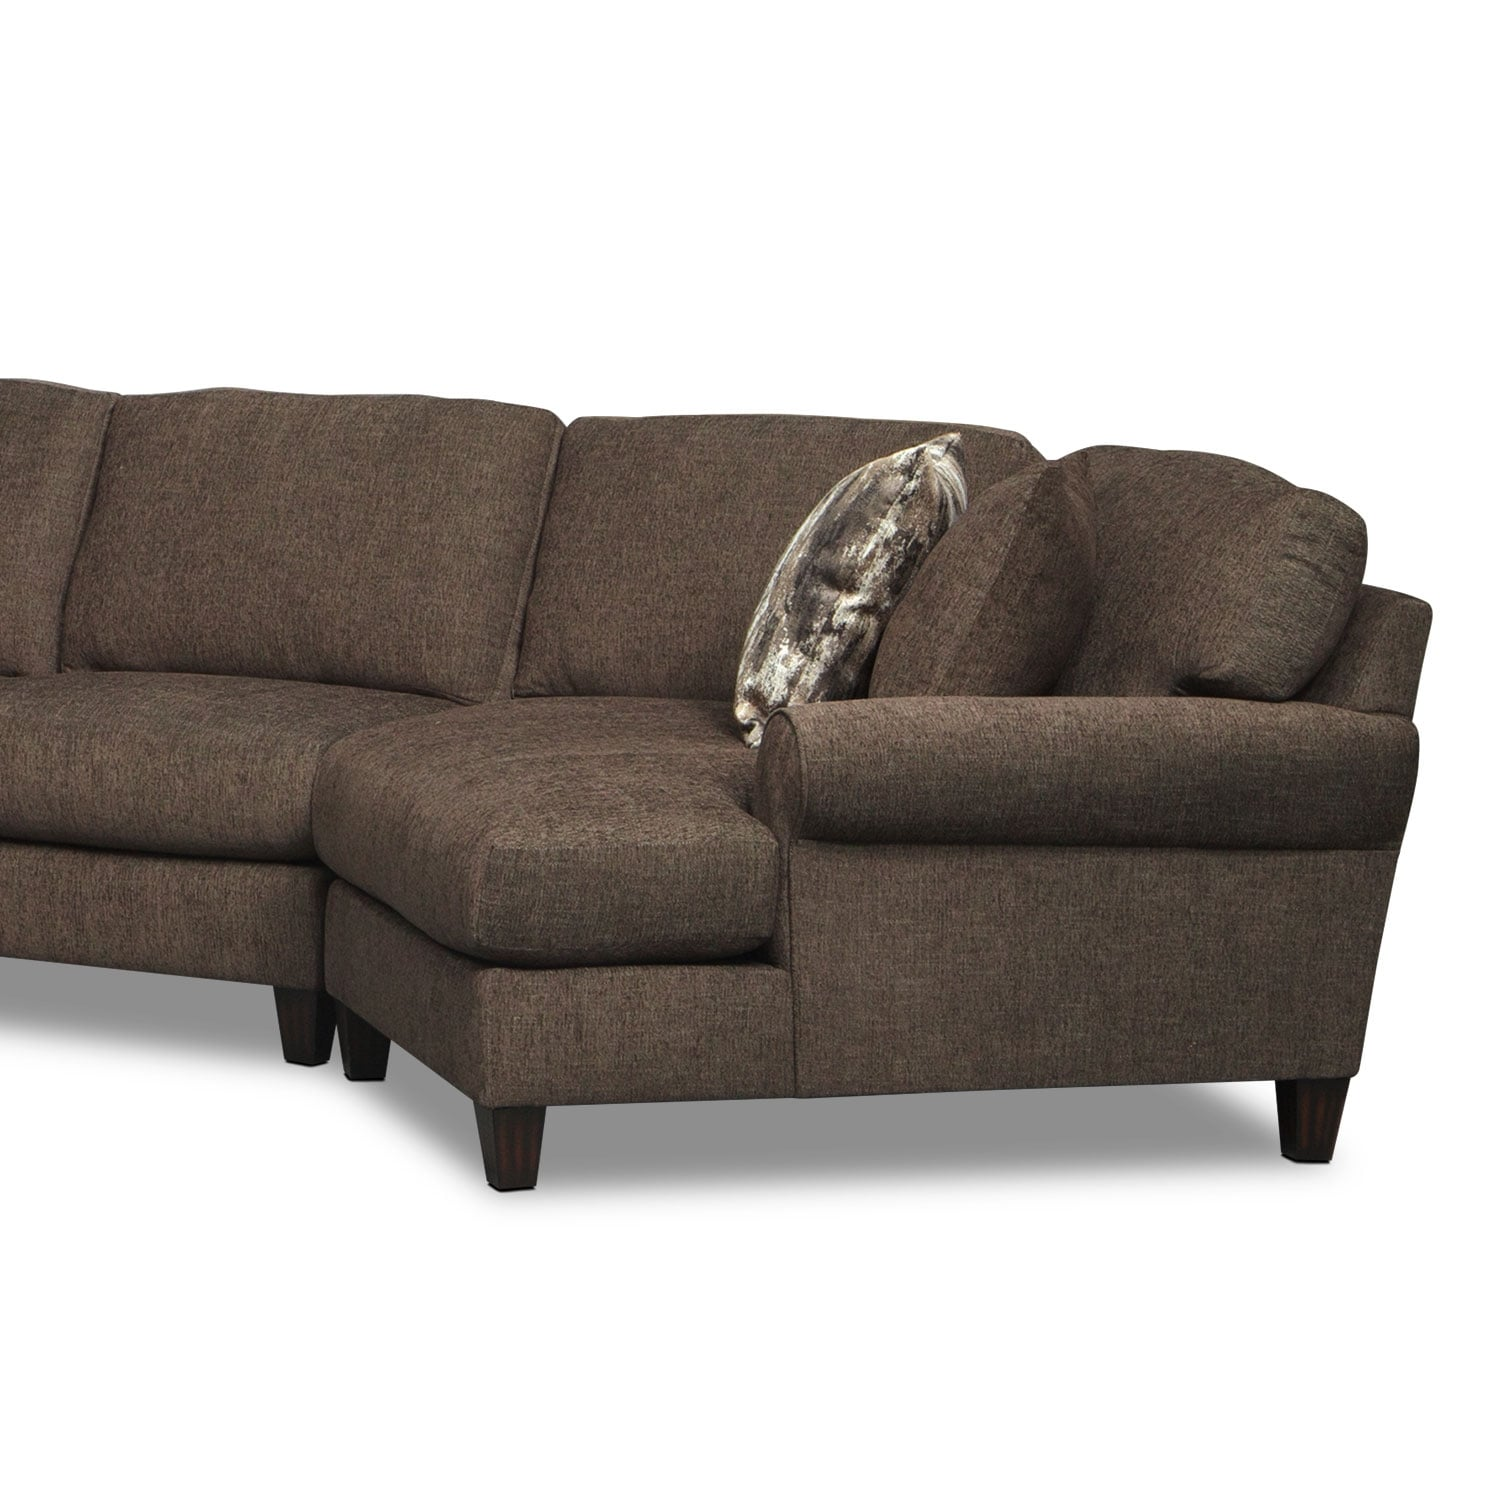 Karma 3 Piece Sectional with Left Facing Chaise and Right Facing